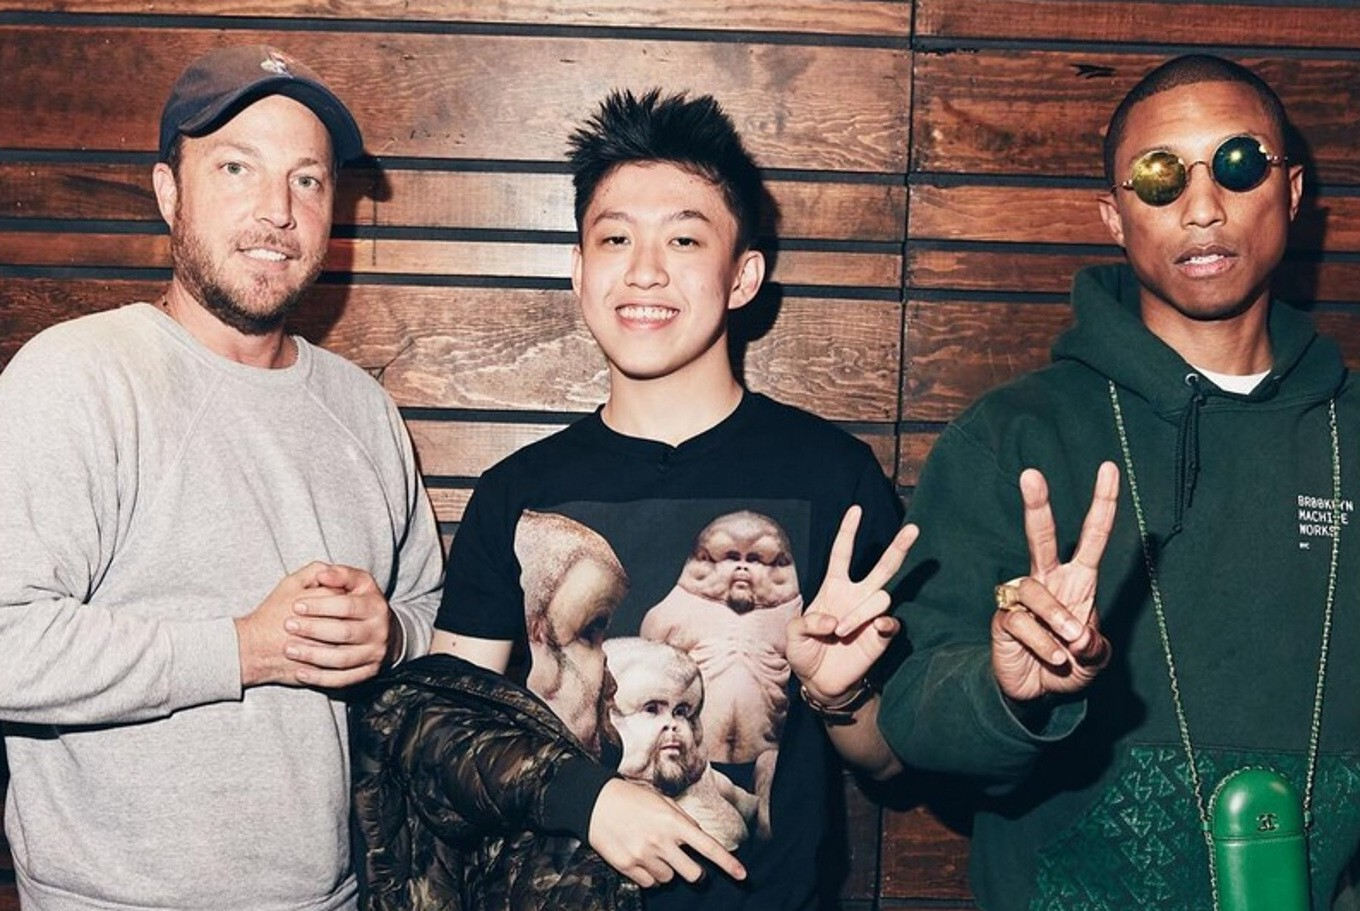 UPDATED: Jakarta-born Rich Chigga tells Rolling Stone why he moved to LA